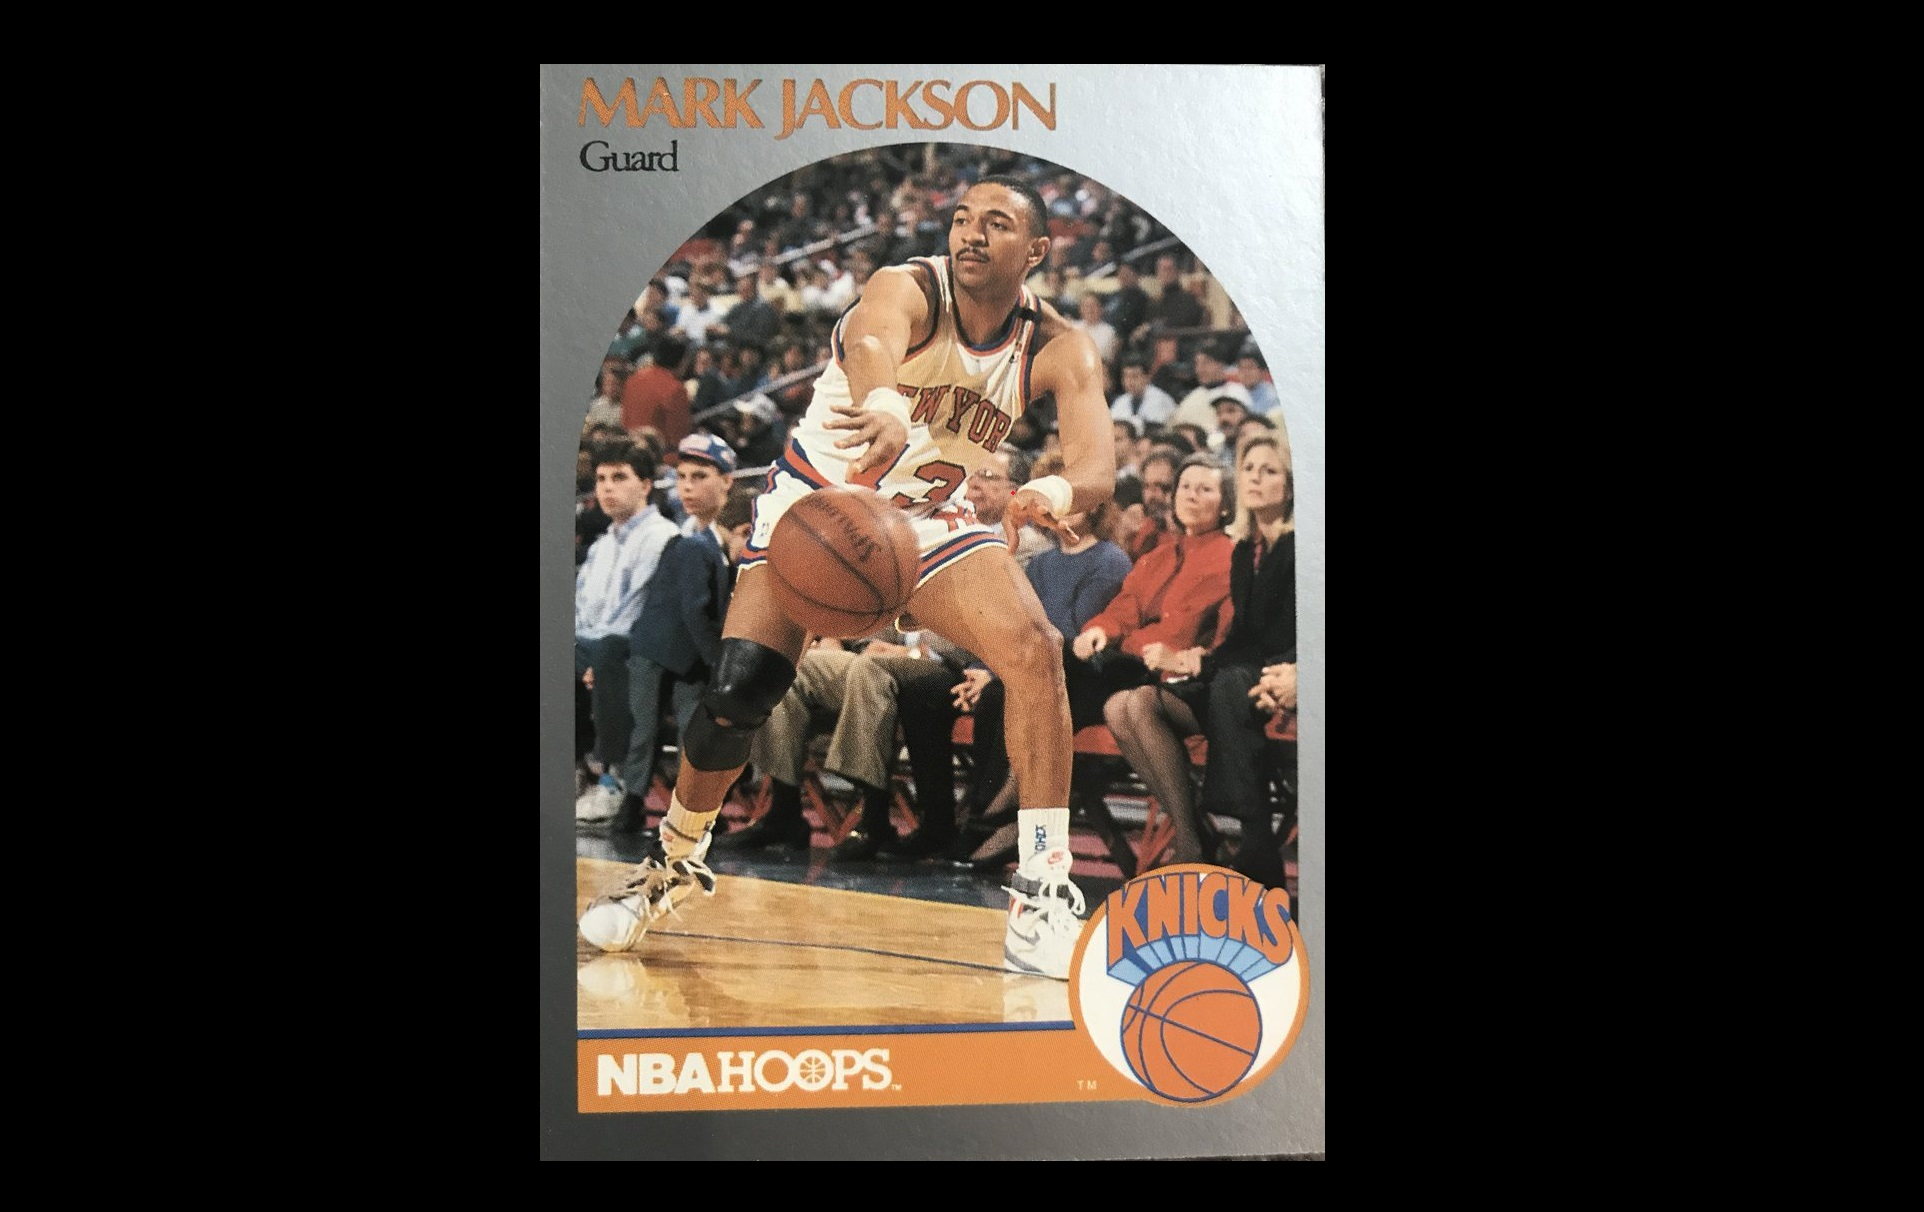 Mark Jackson Basketball Card Features Murderers In